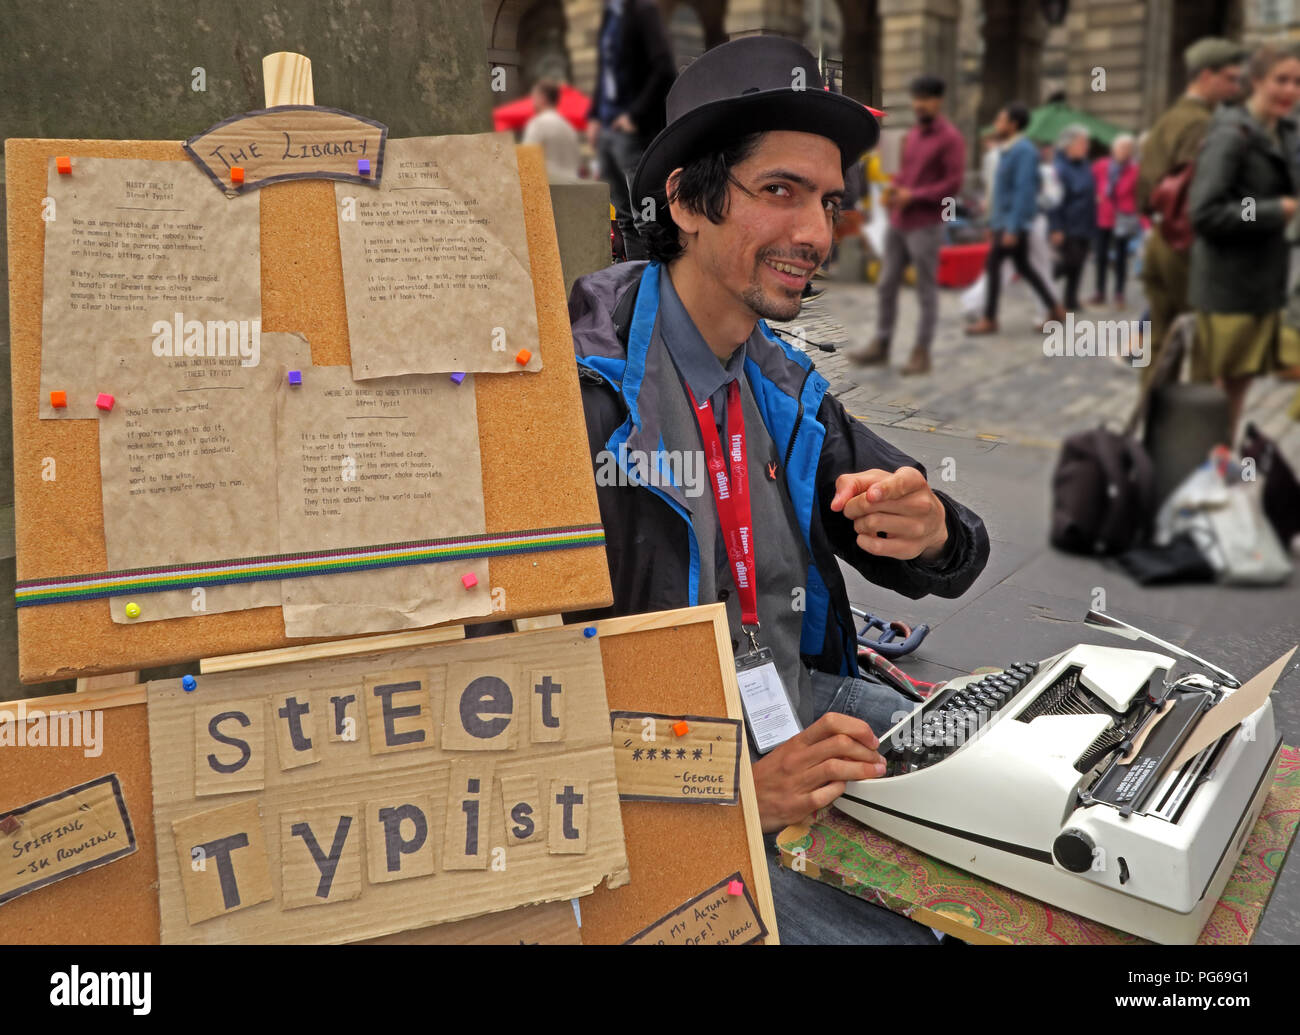 Street Typist, Edinburgh fringe, High St, Edinburgh, Lothian, Scotland,UK - Stock Image